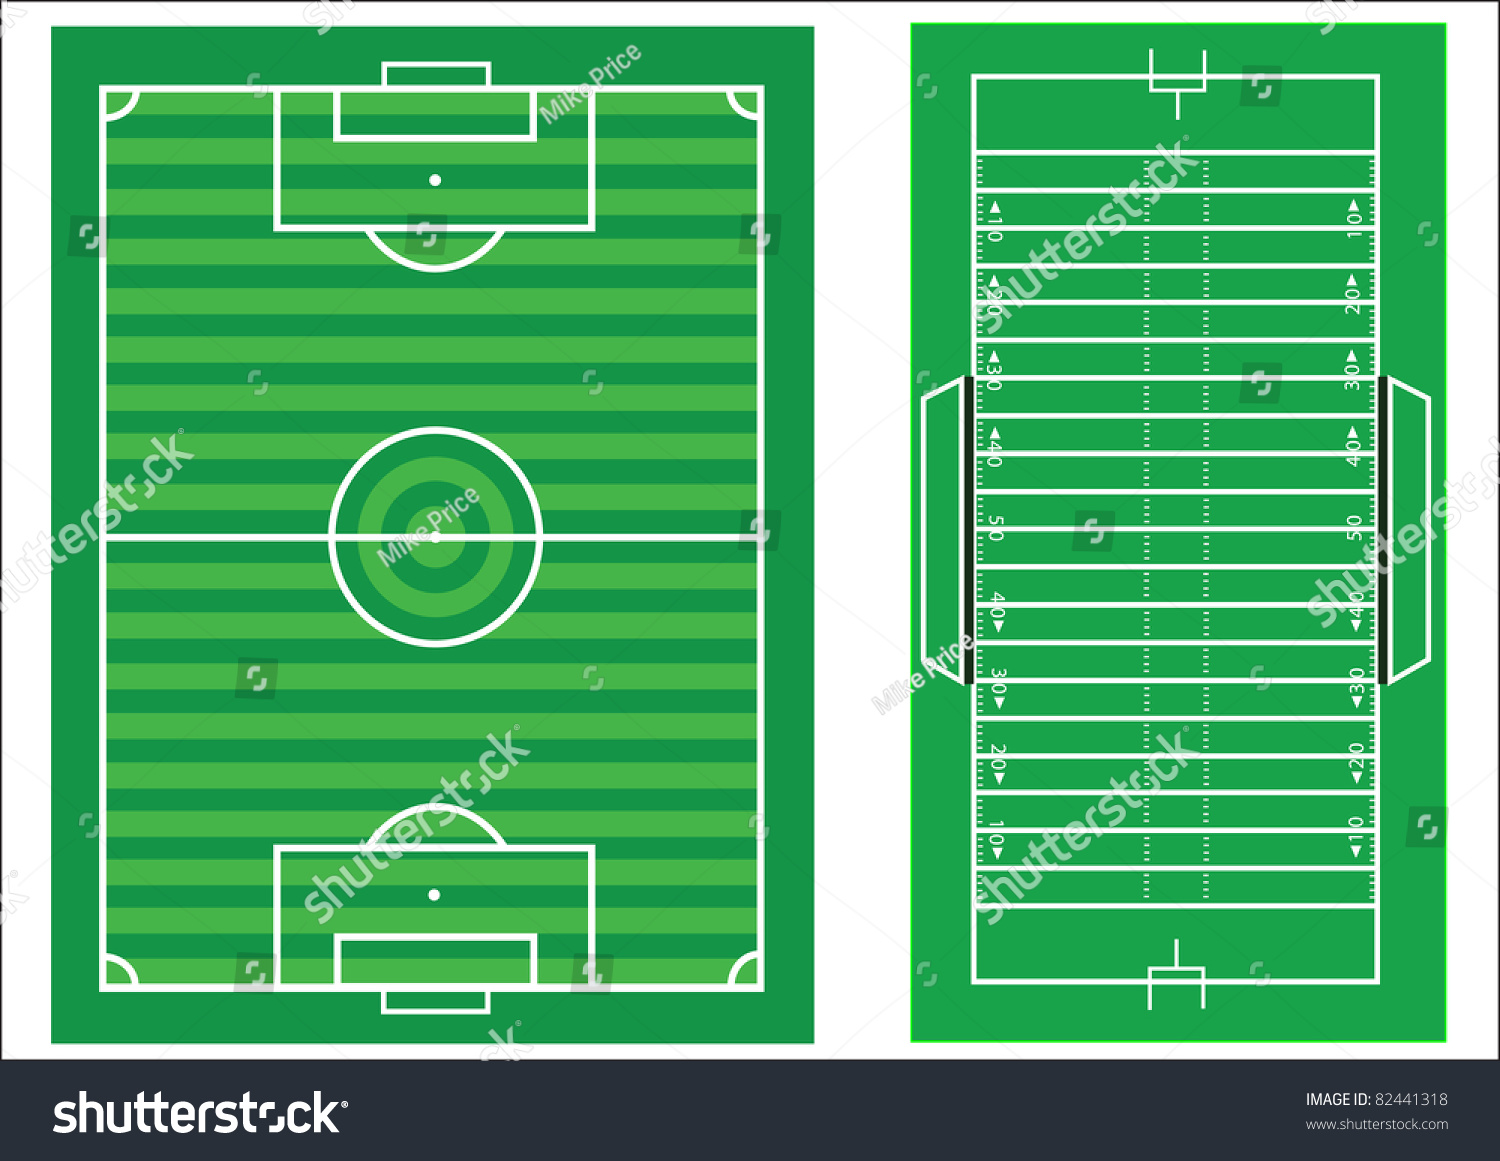 a comparison of american football and soccer A comparison, in honor of the world cup so, football (soccer) was first, then rugby football came from football, then american football came from rugby football.